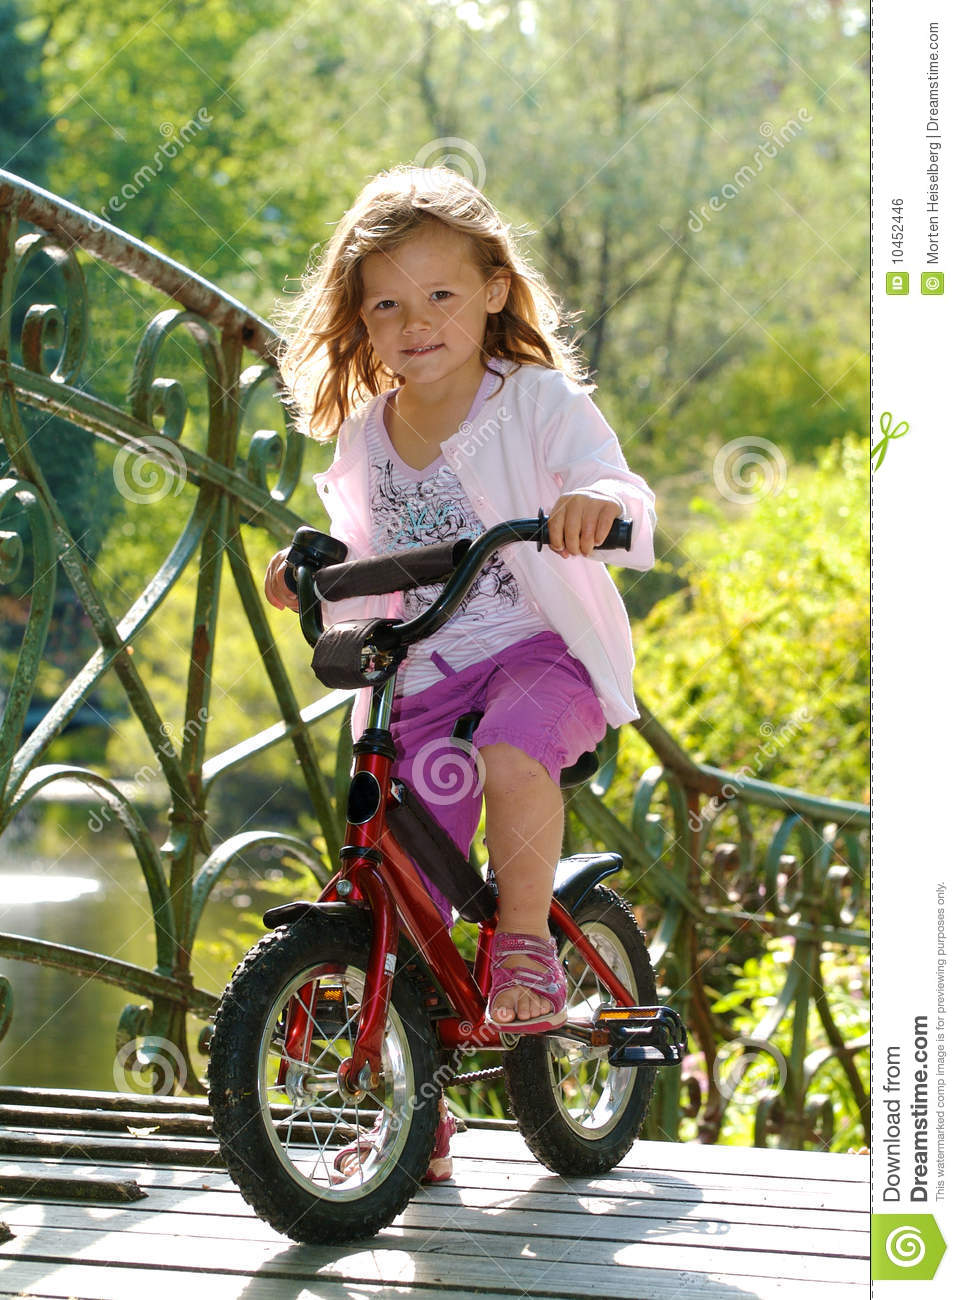 Fixie Girl Wallpaper Girl On A Bike Royalty Free Stock Image Image 10452446